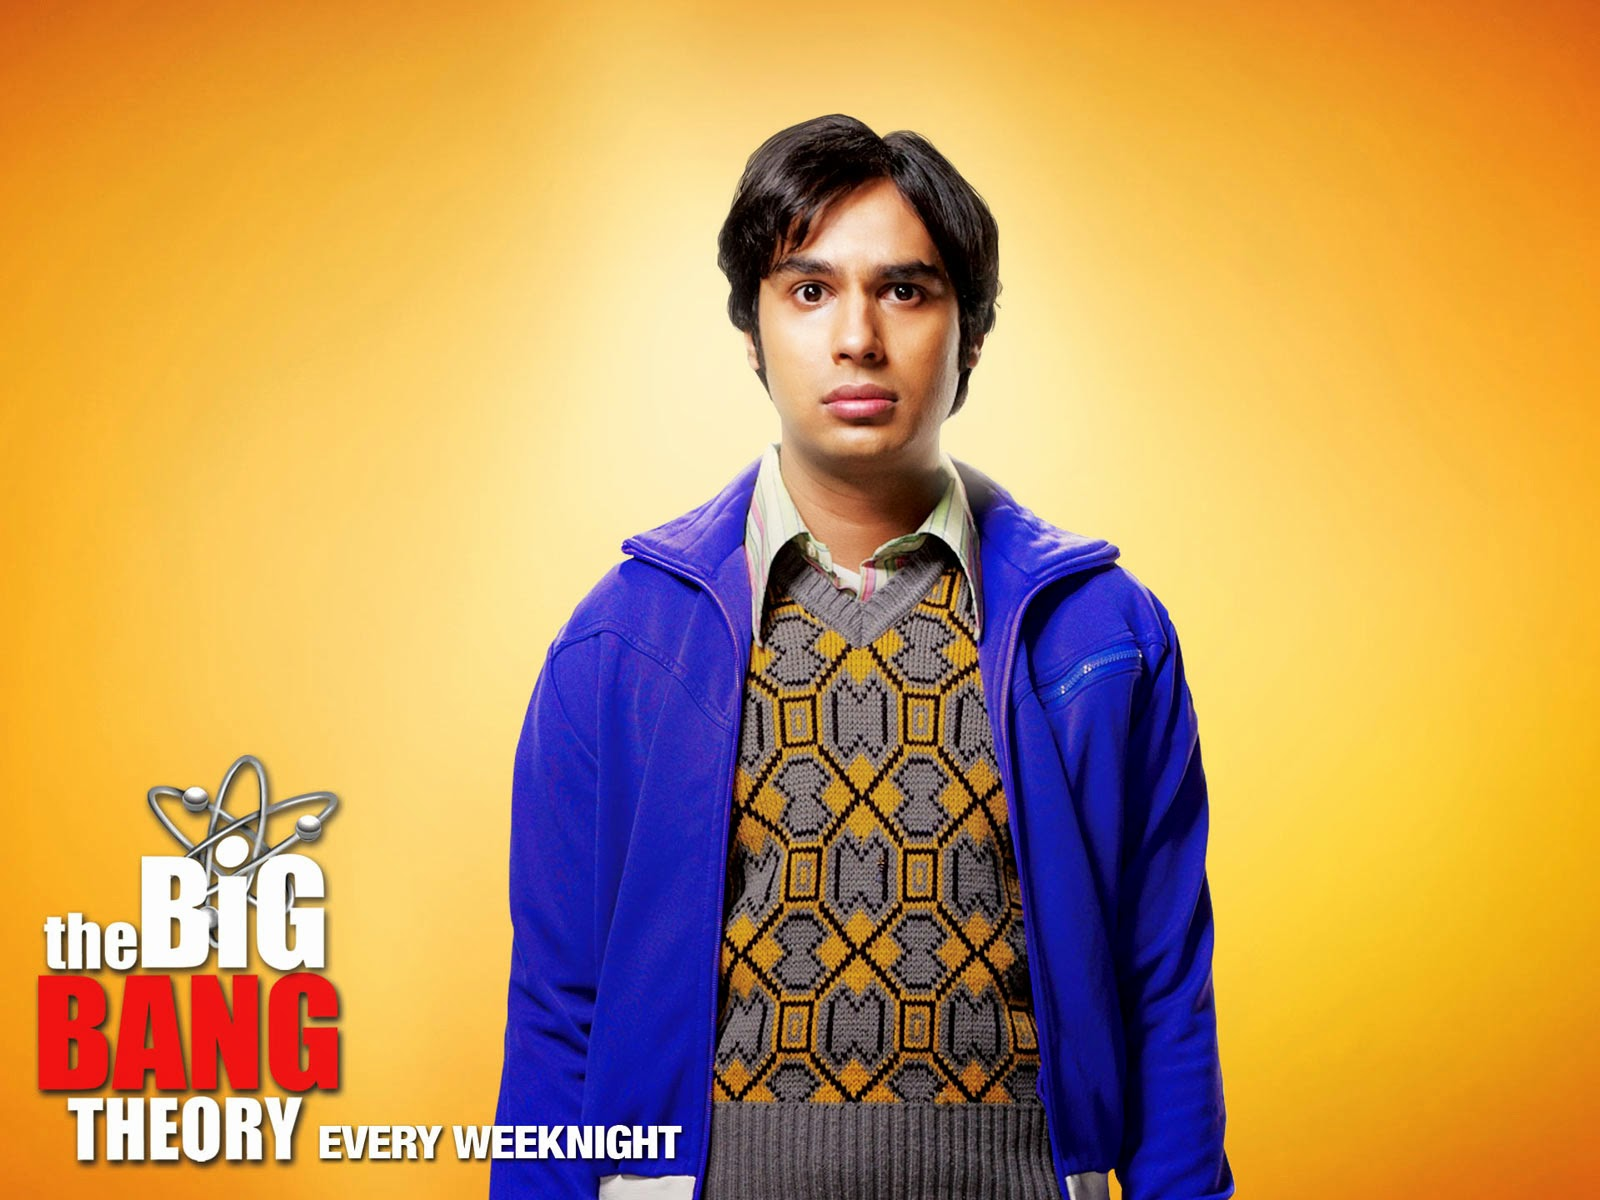 Raj - Papel de parede The Big Bang Theory